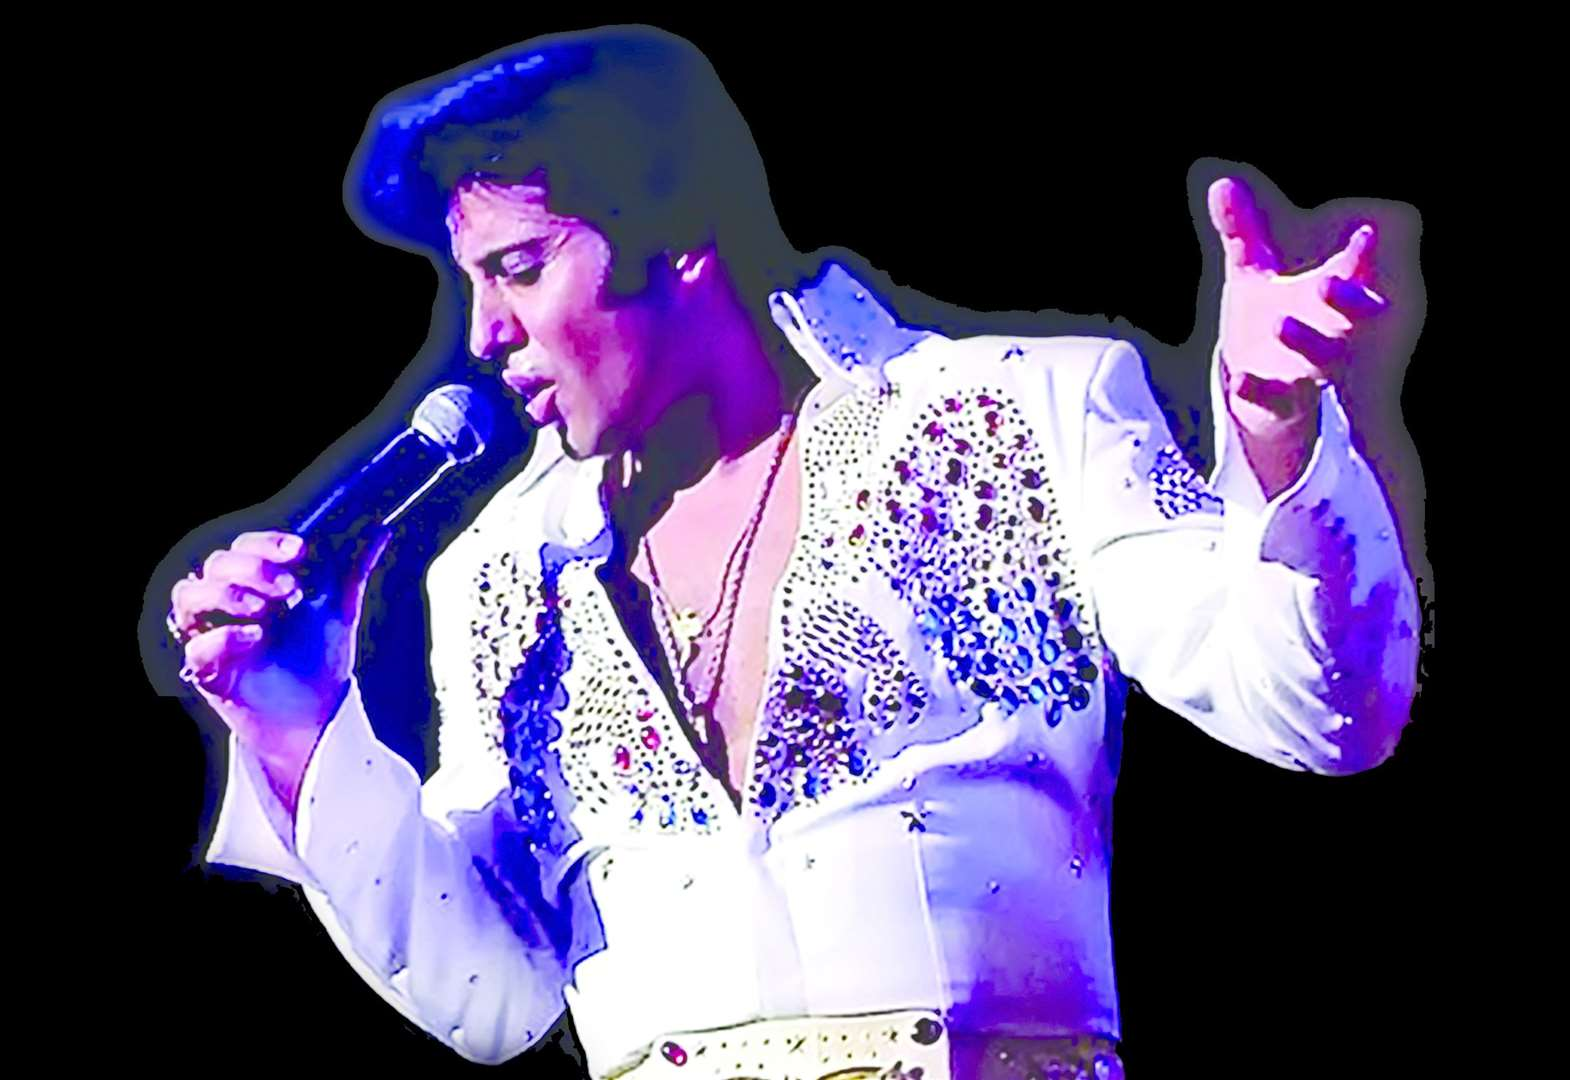 Show is fitting tribute to Elvis